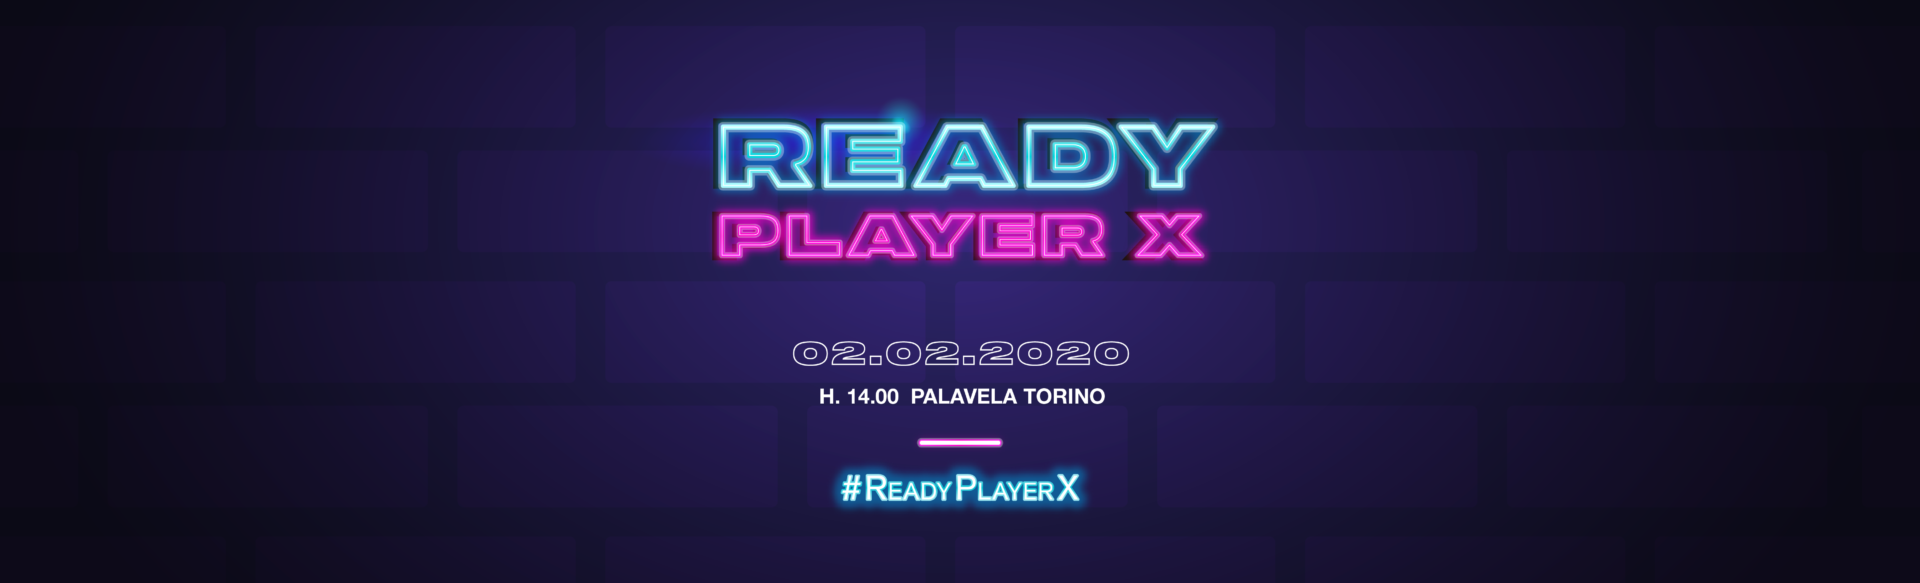 Ready Player X